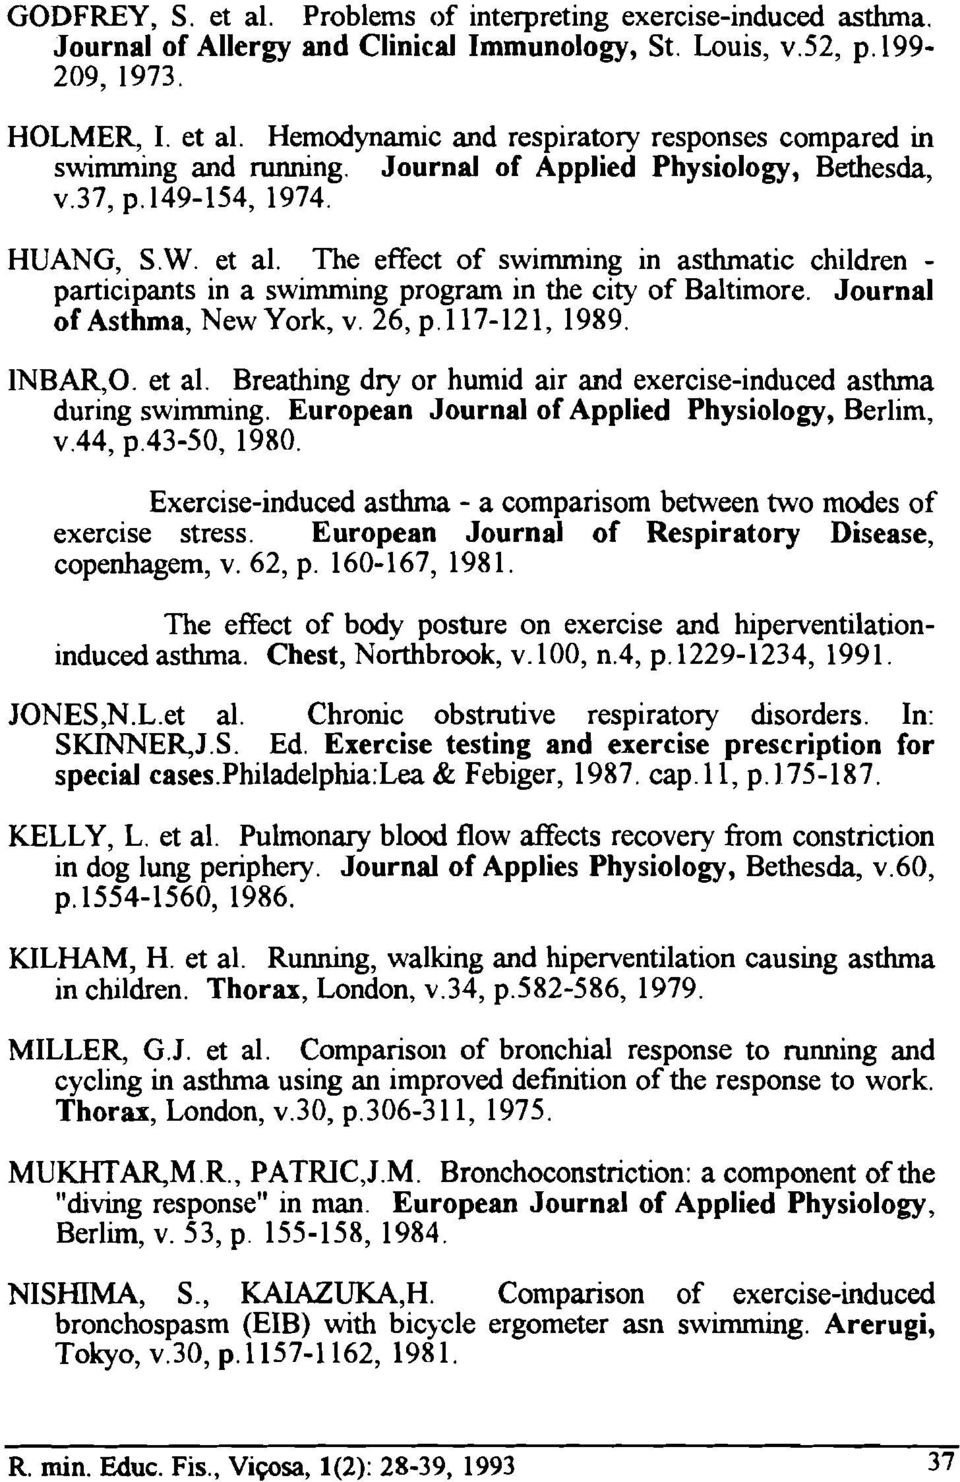 Journal of Asthma, New York, v. 26, p. 117-121, 1989. lnbar,o. et al. Breathing dry or humid air and exercise-induced asthrna during swimrning. European Journal of Applied Physiology, Berlim, v.44, p.